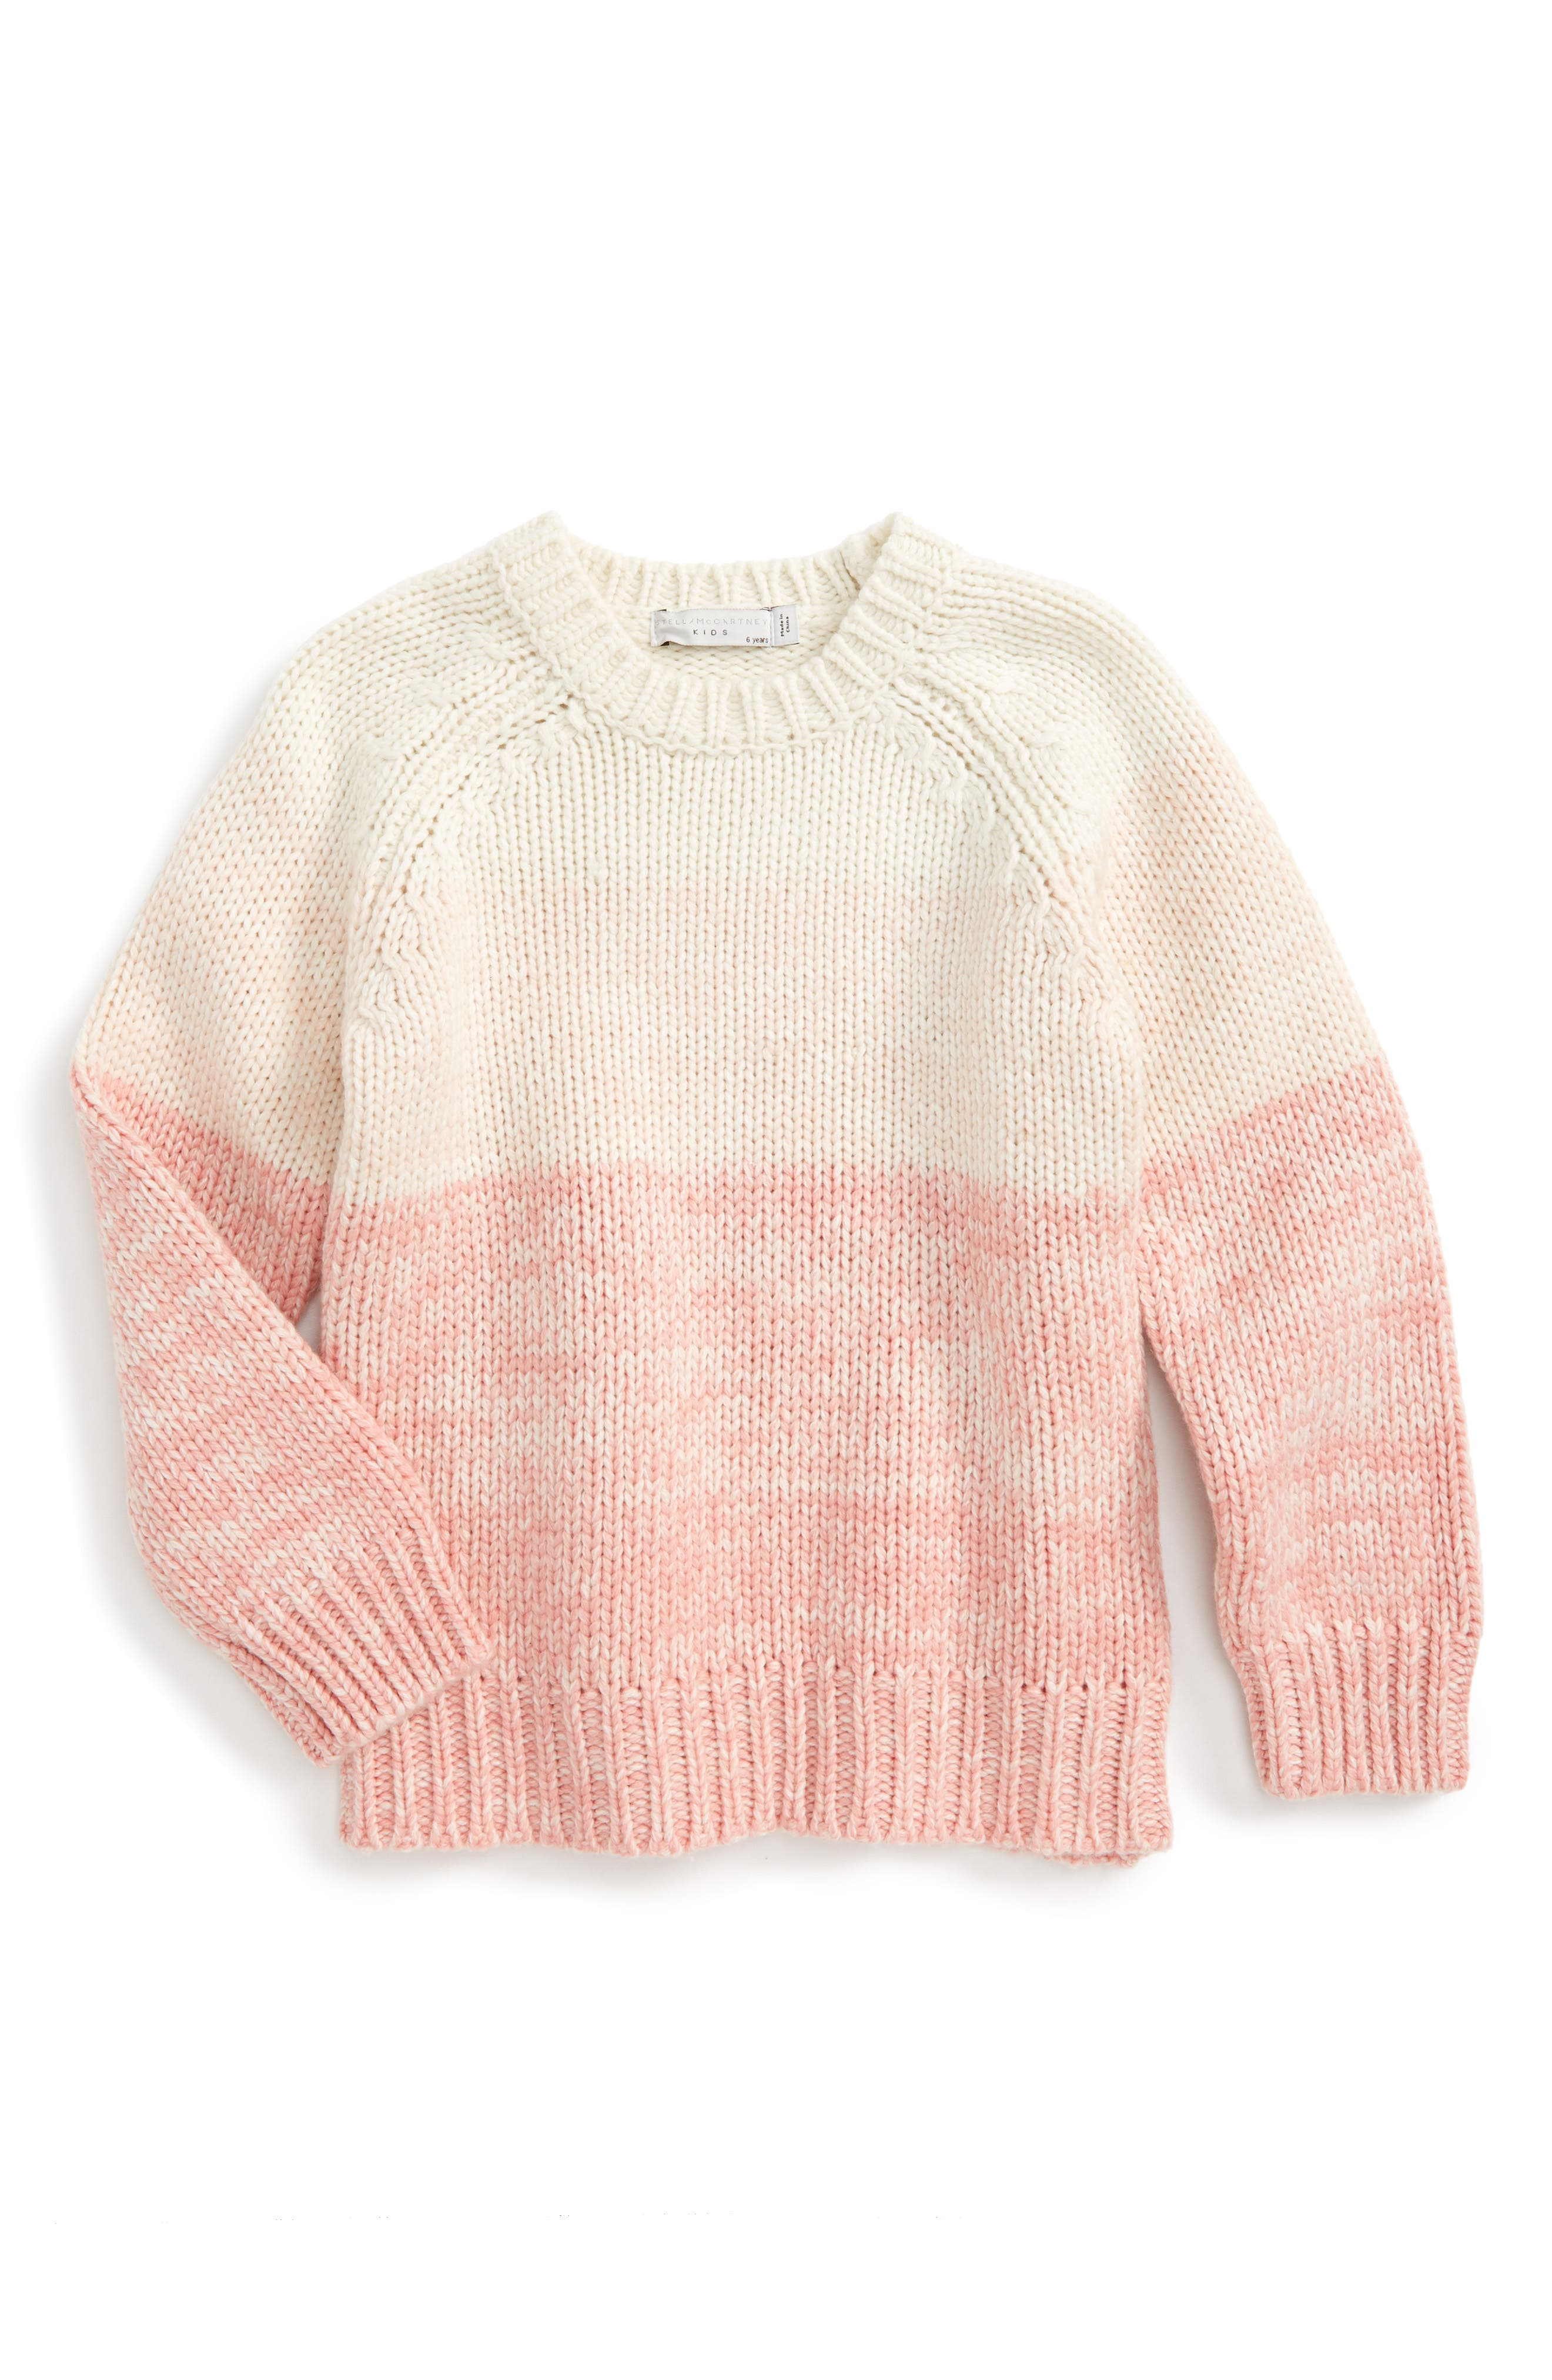 Kids Freddie Chunky Knit Sweater,                             Main thumbnail 1, color,                             650